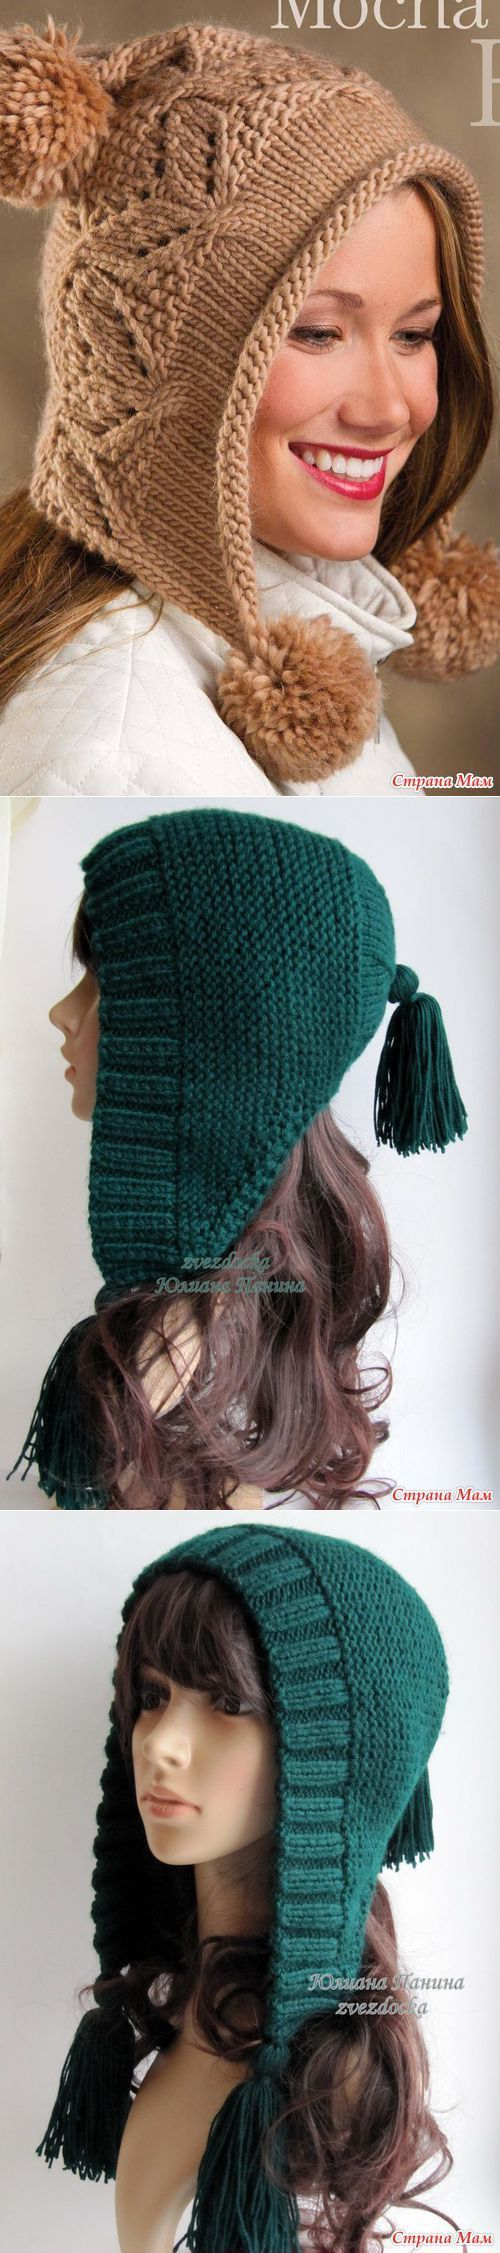 stranamam.ru [] #<br/> # #Knitting #And #Crocheting,<br/> # #Knitting #Hats,<br/> # #Knit #Hats,<br/> # #Hoods,<br/> # #Radios,<br/> # #Cap #D